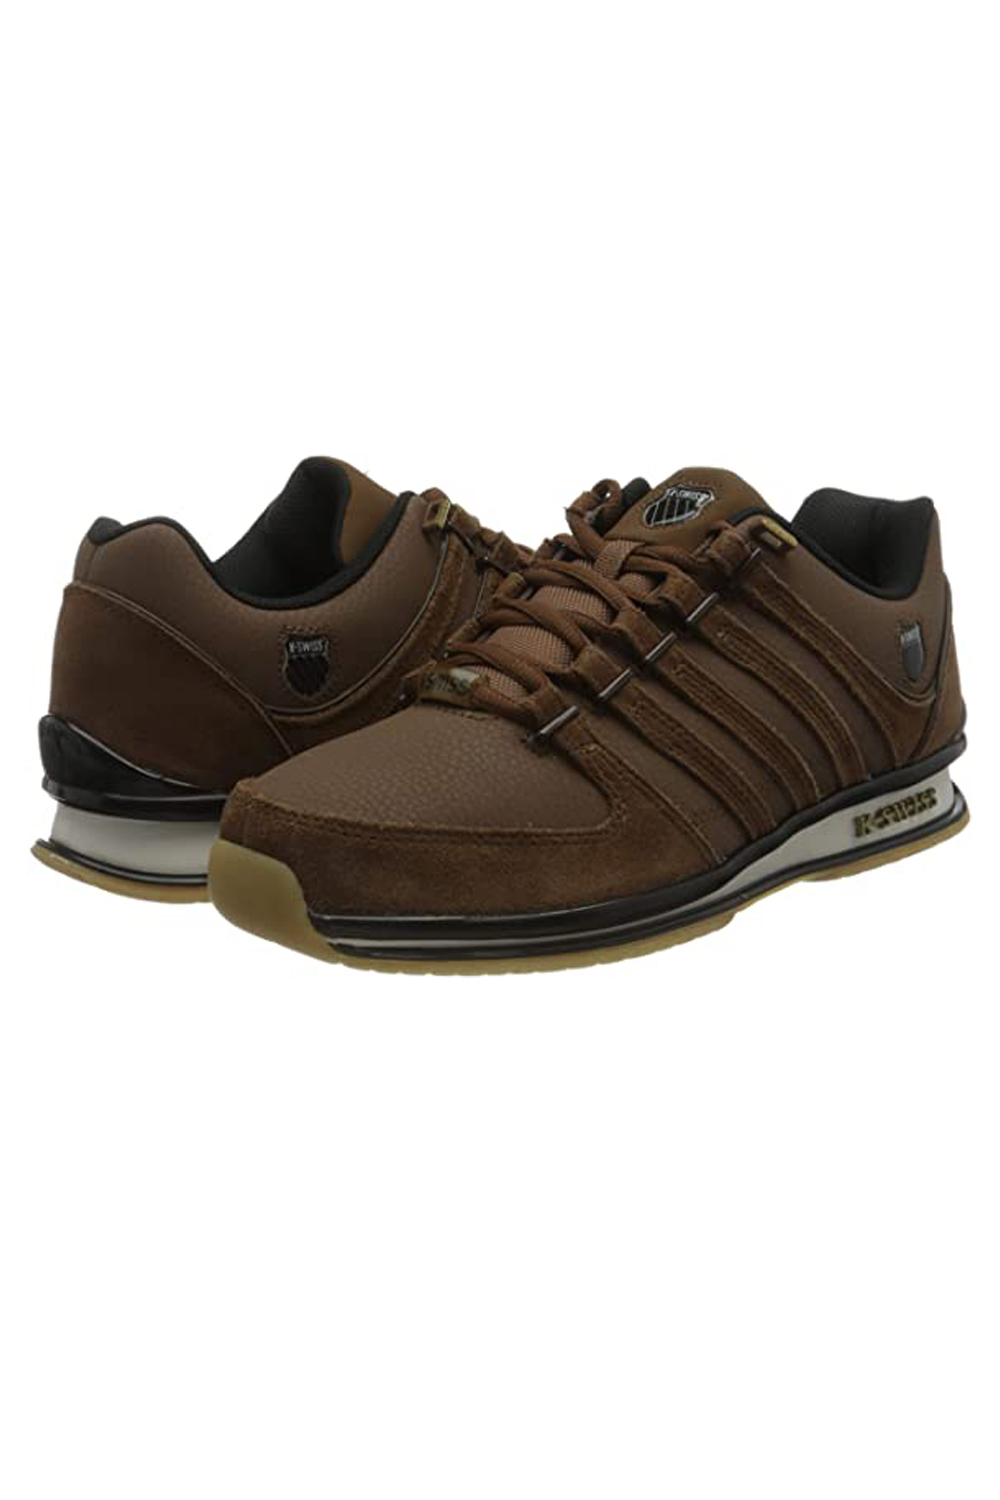 thumbnail 19 - K-Swiss Mens Comfortable Low Top Classic Leather Suede Rinzler Trainers Sneakers